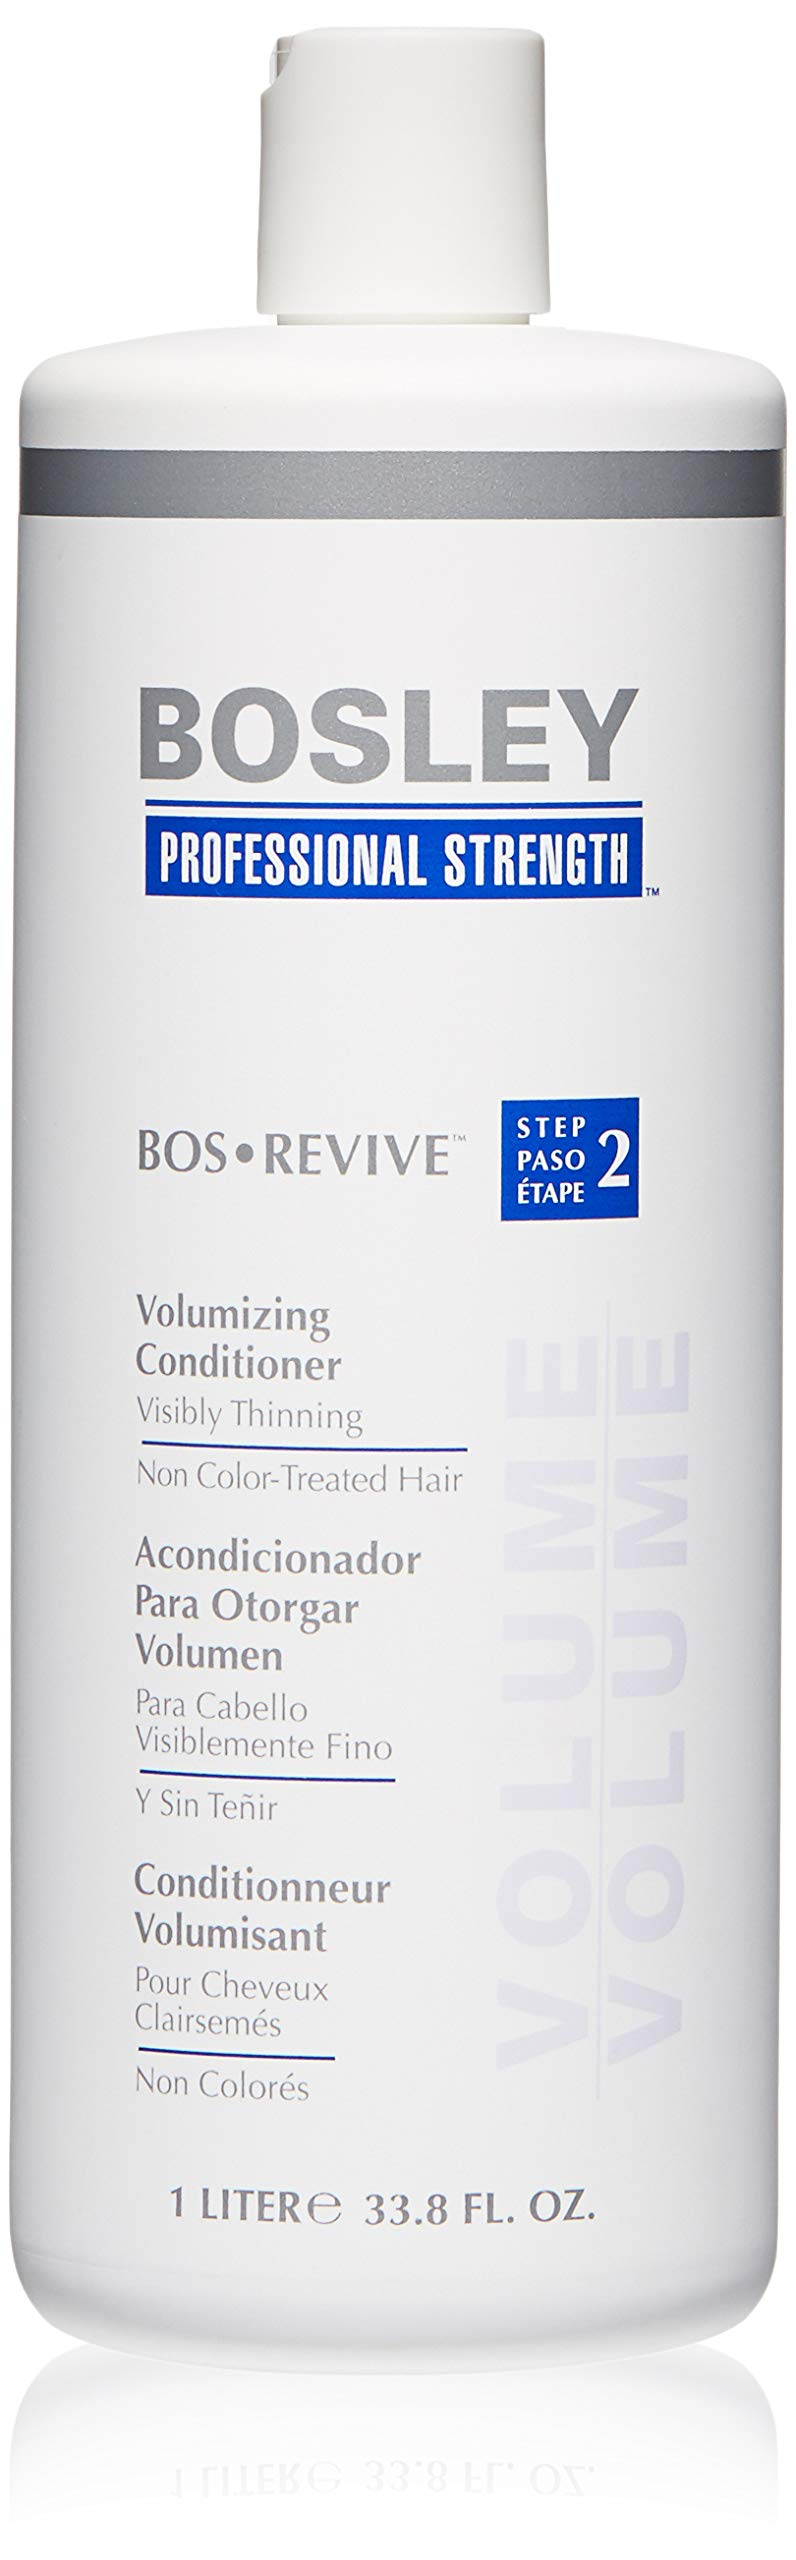 Bosley Professional Strength BOSRevive Volumizing Conditioner for Visibly Thinning Hair by Bosley Professional Strength